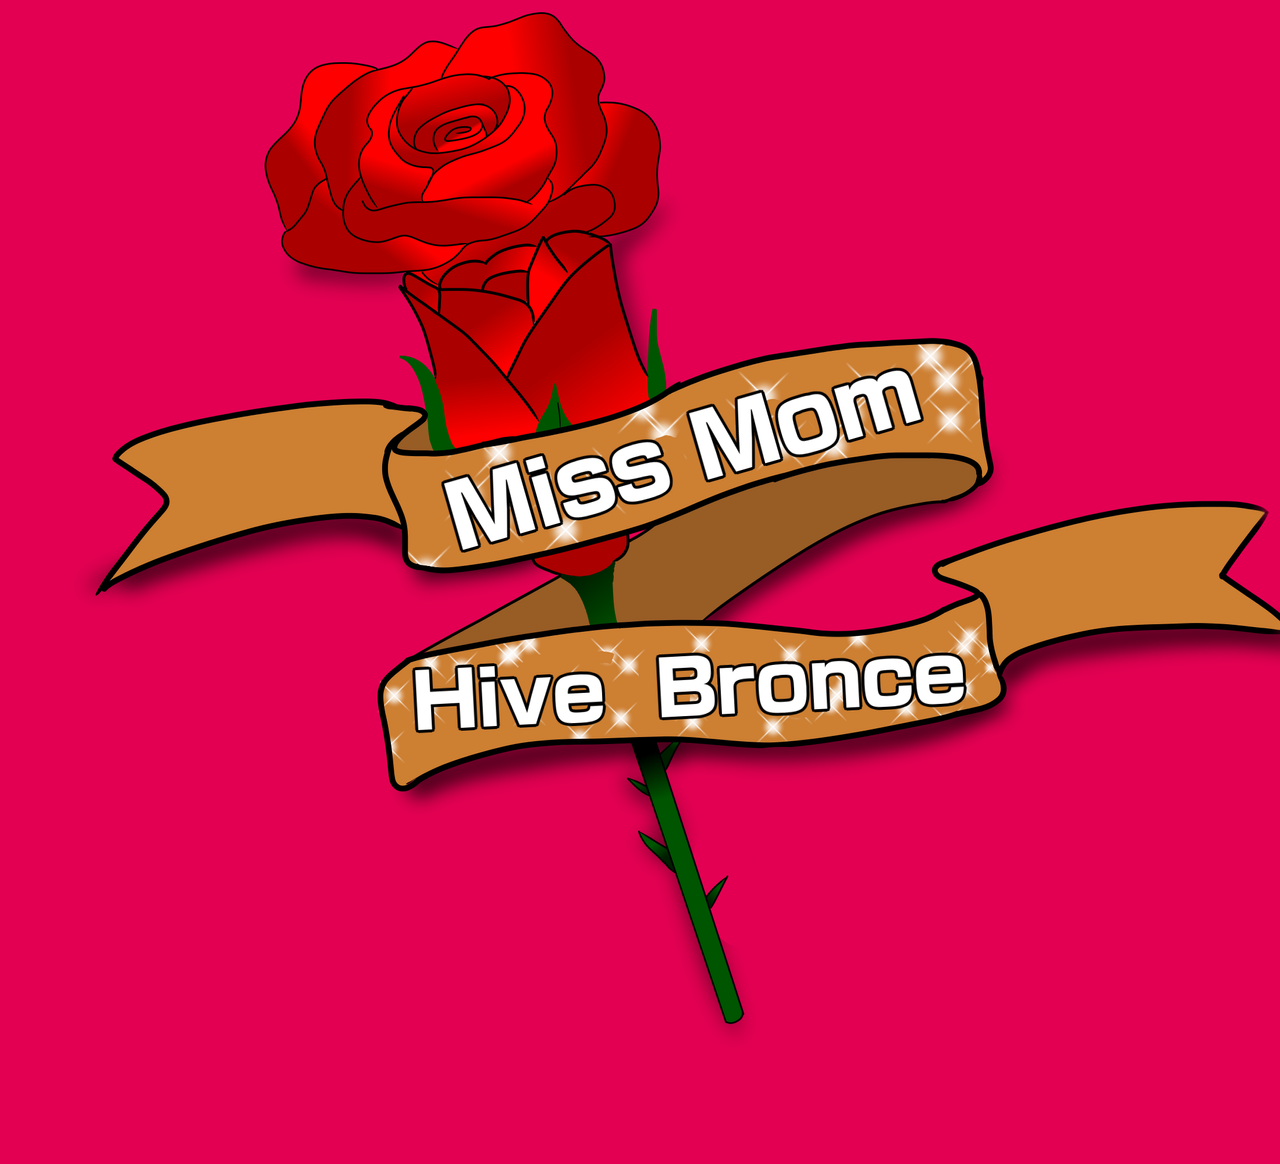 Miss_momm_bronce.png